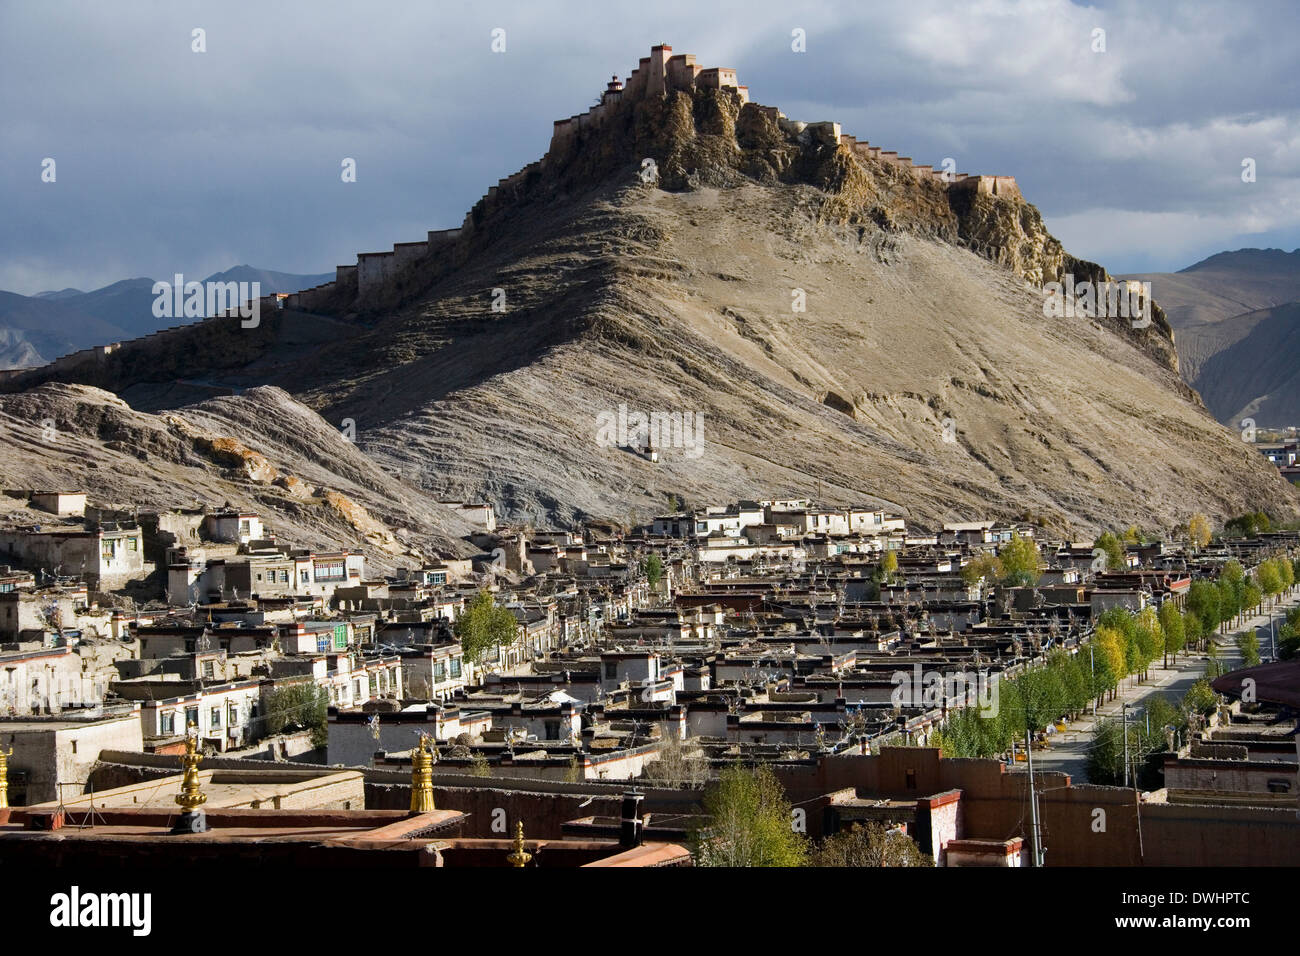 Gyantsie Fort and the town of Gyantse in Tibet. - Stock Image